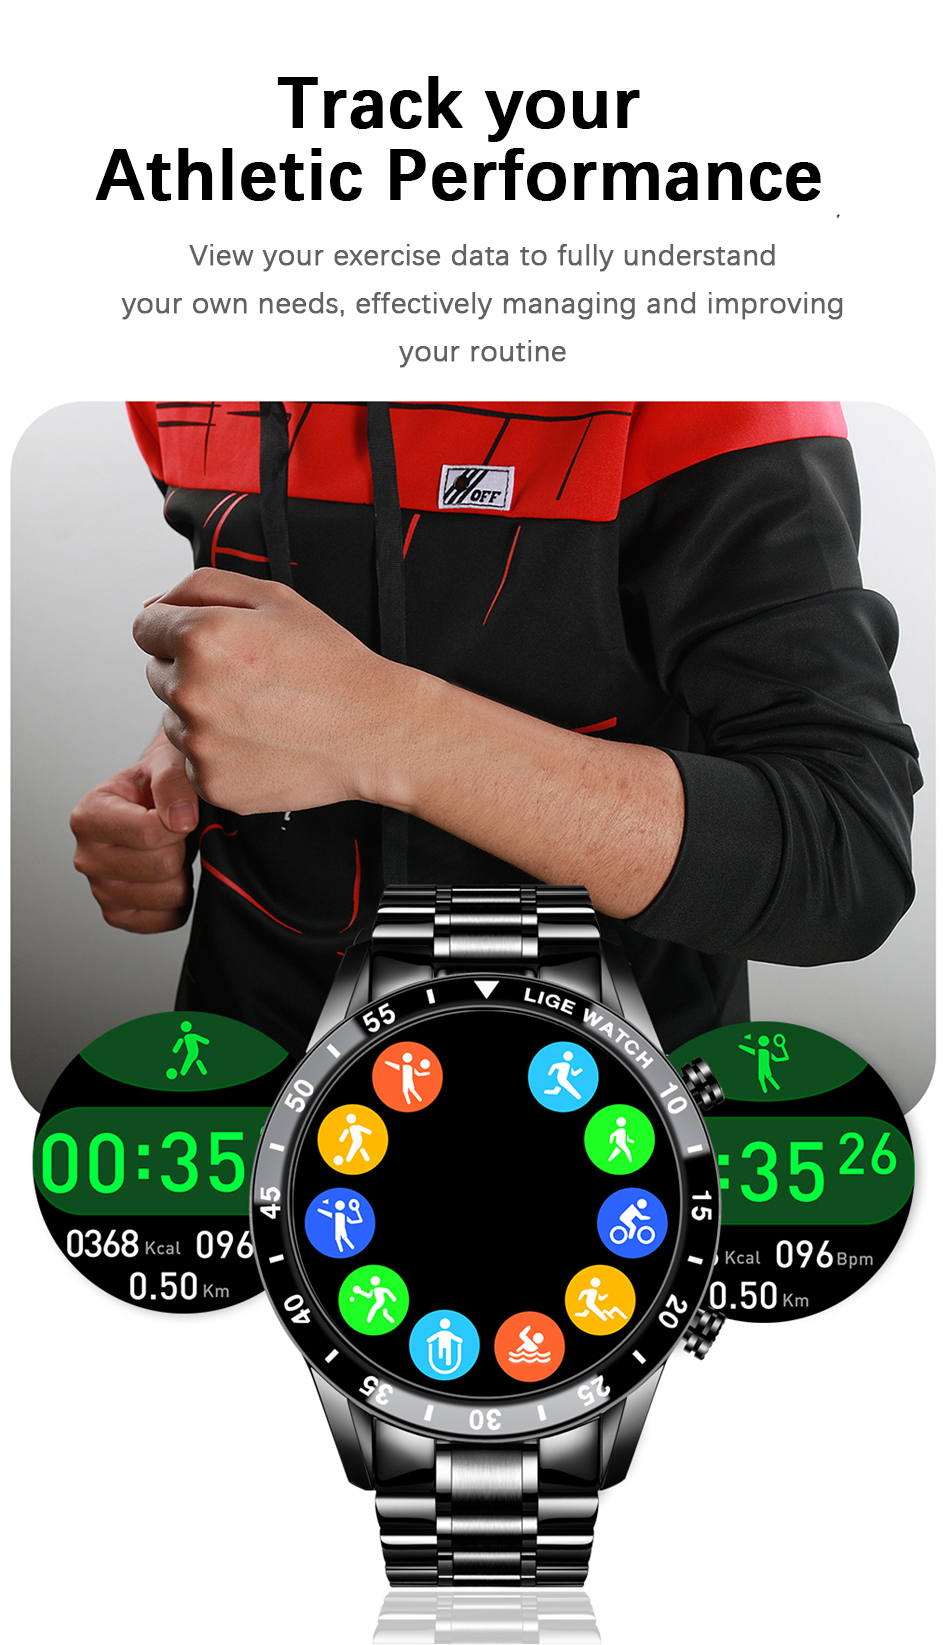 H1841efacc7594d49905b26864b328c47F LIGE 2021 New Men Smart Watch Bluetooth Call Watch IP67 Waterproof Sports Fitness Watch For Android IOS Smart Watch 2021 + Box